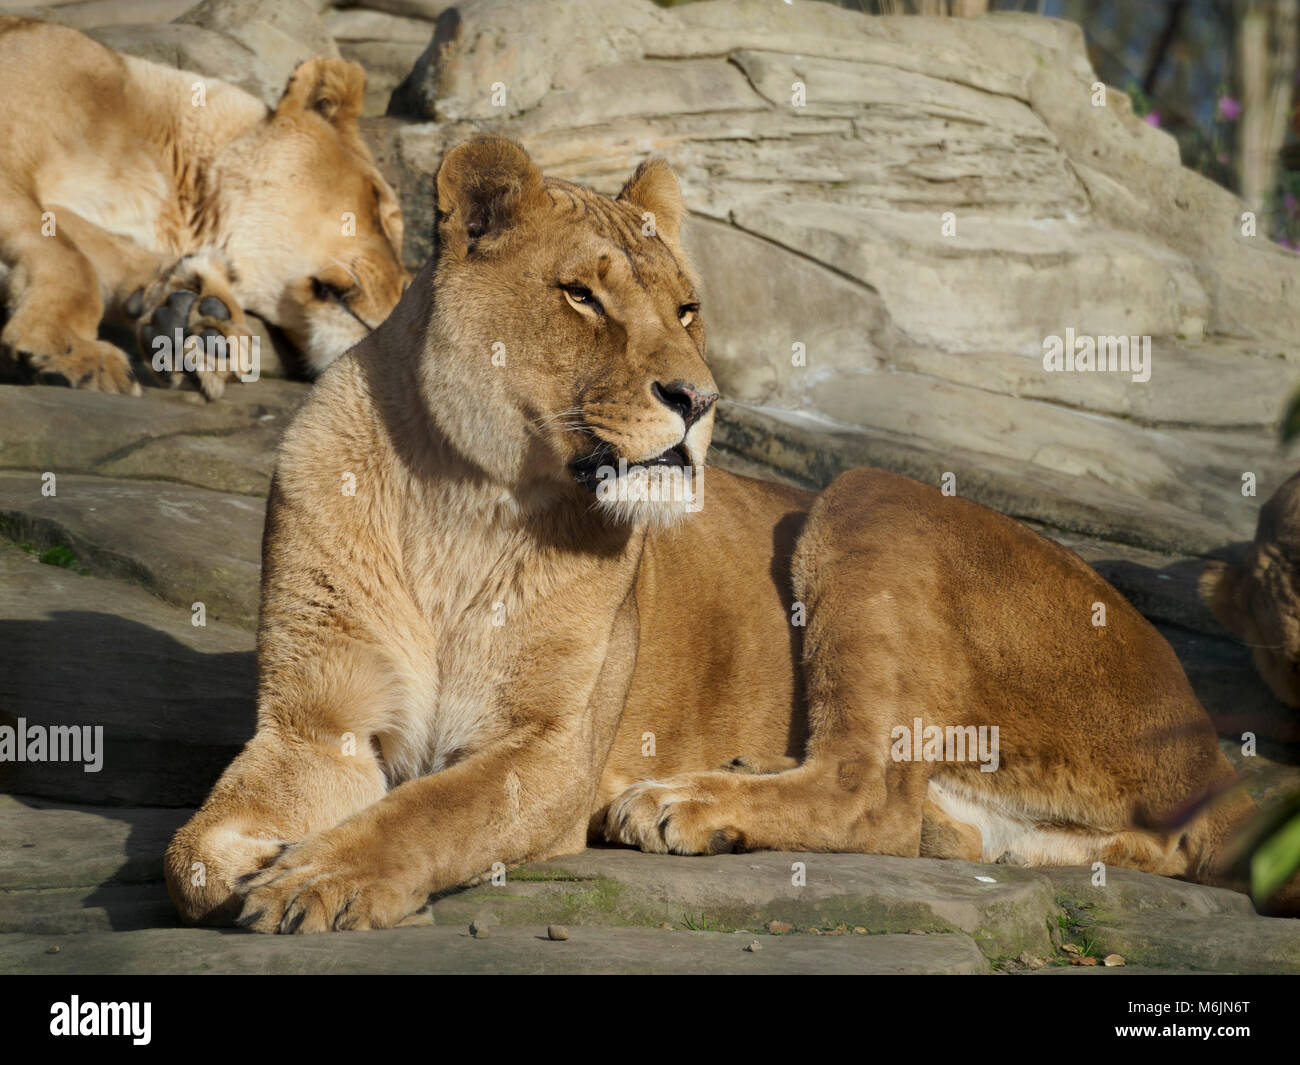 Five Sisters Zoo, near Livingston, Scotland. Rescued lionesses relax in the sun on rocks. - Stock Image